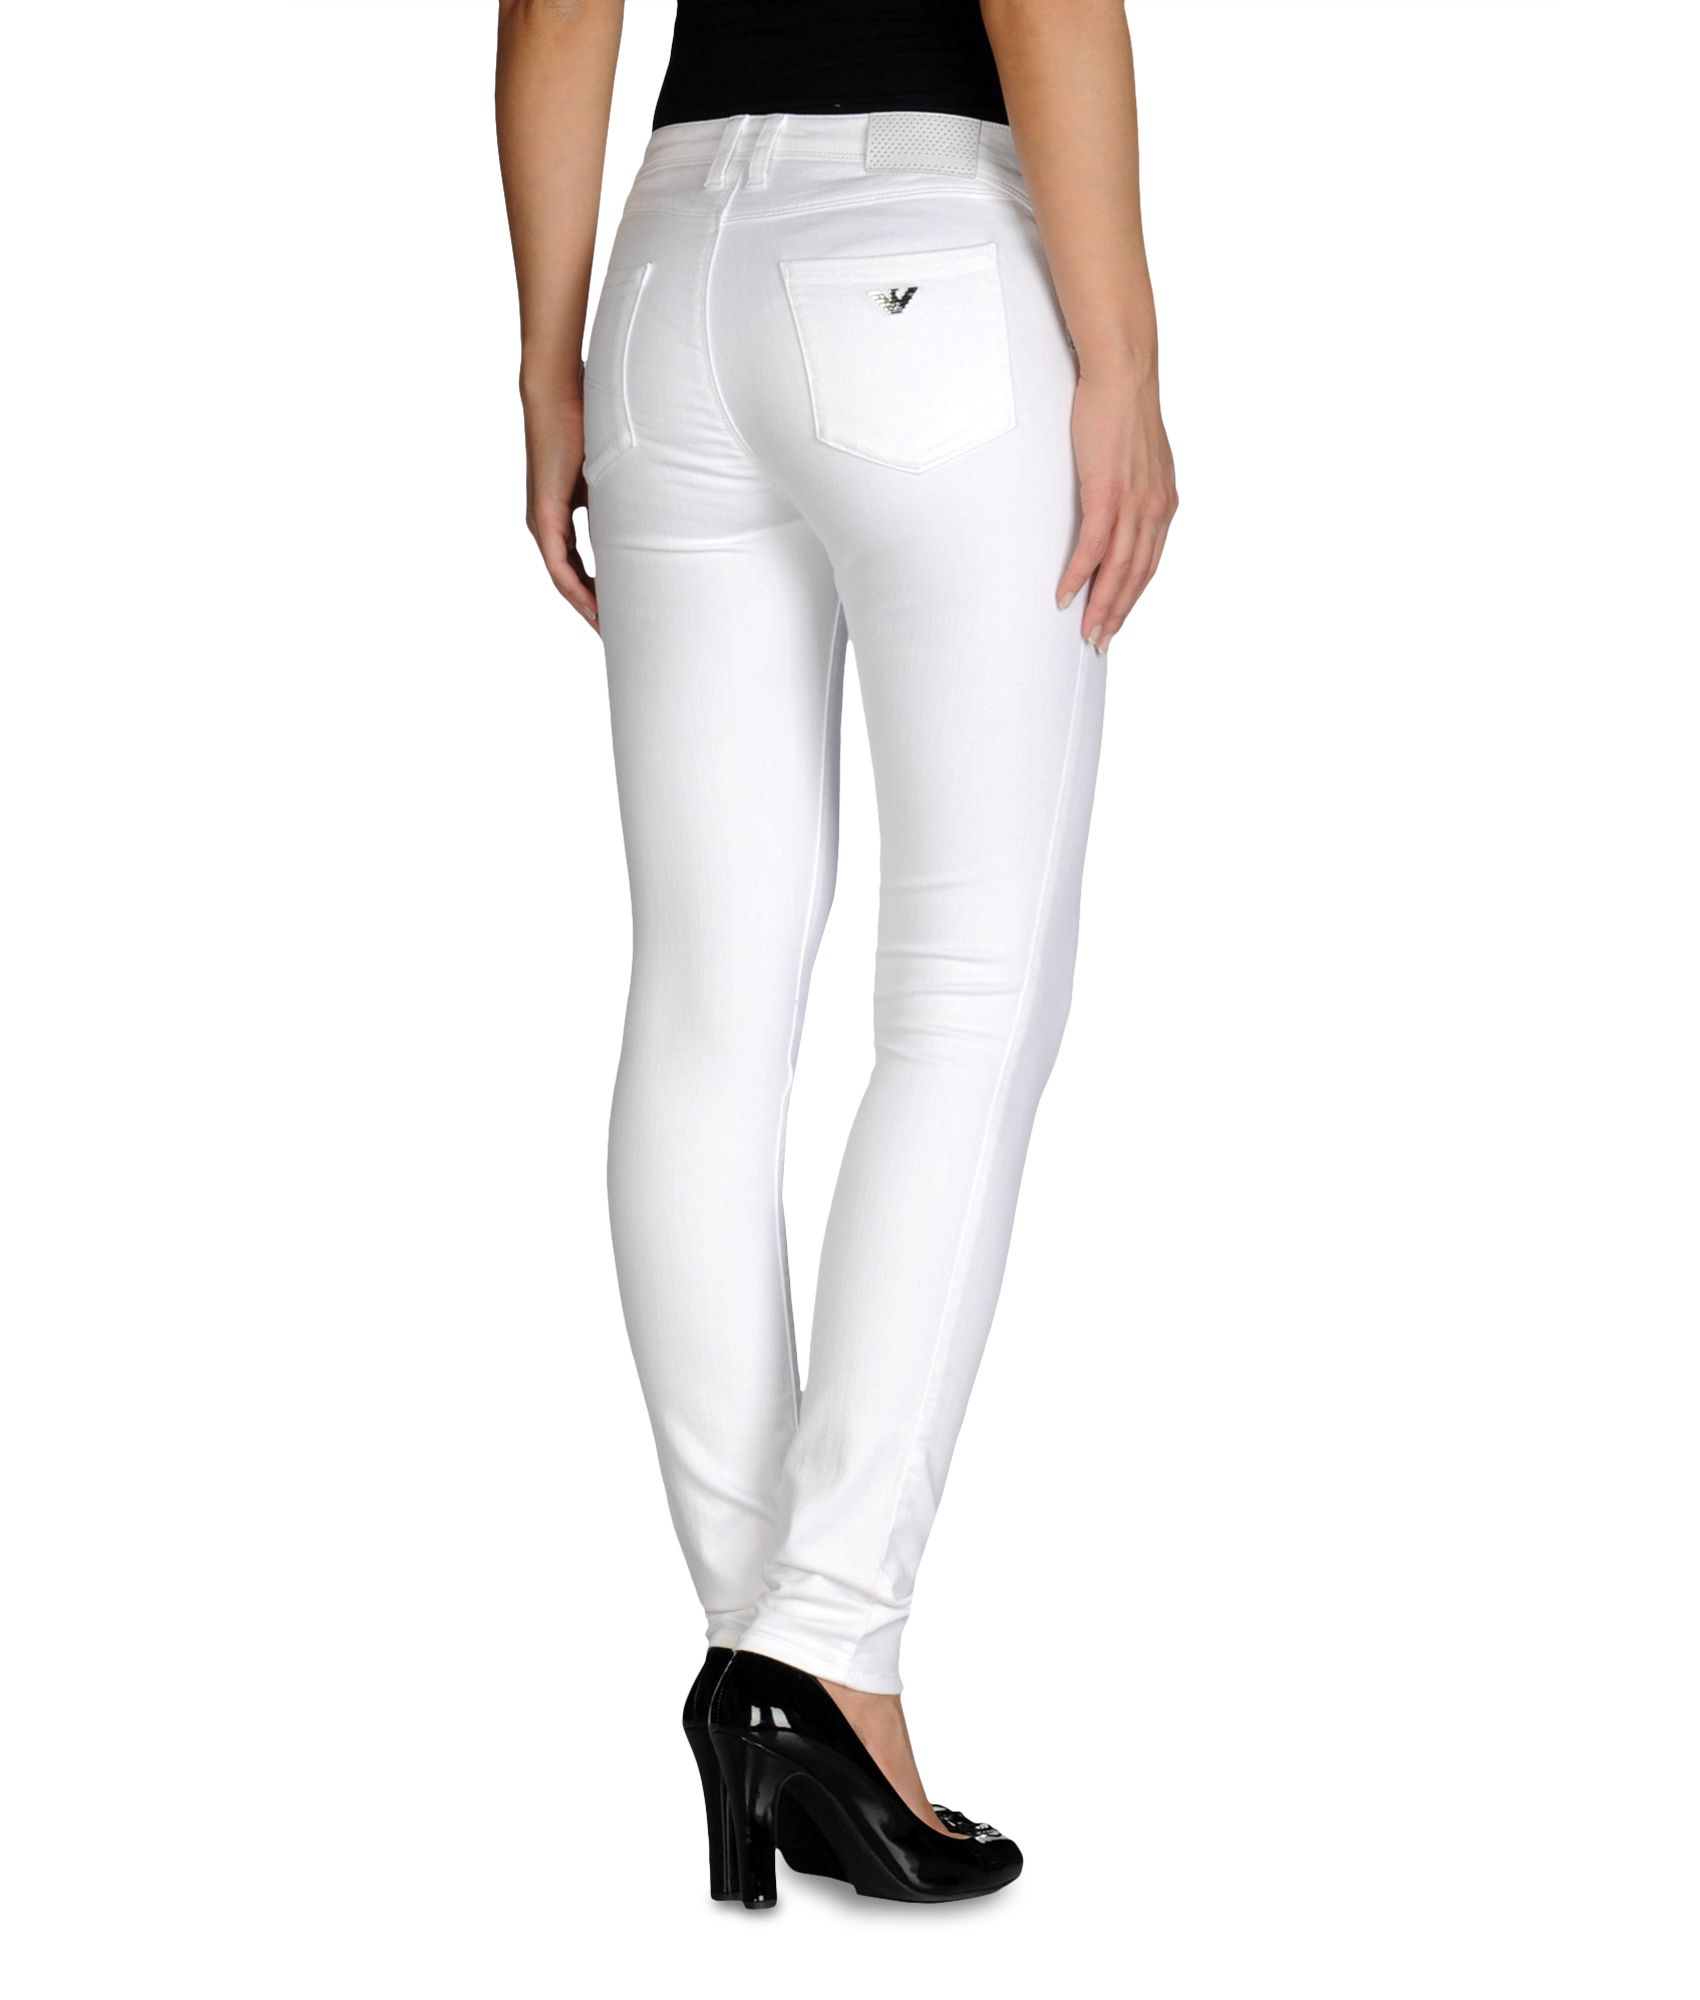 Womens Jeggings - Jean LeggingsFit For You· Free Shipping $50+· #expressjeans· Available in PetiteStyles: Women's, Tops, Bottoms, Dresses, Jackets.